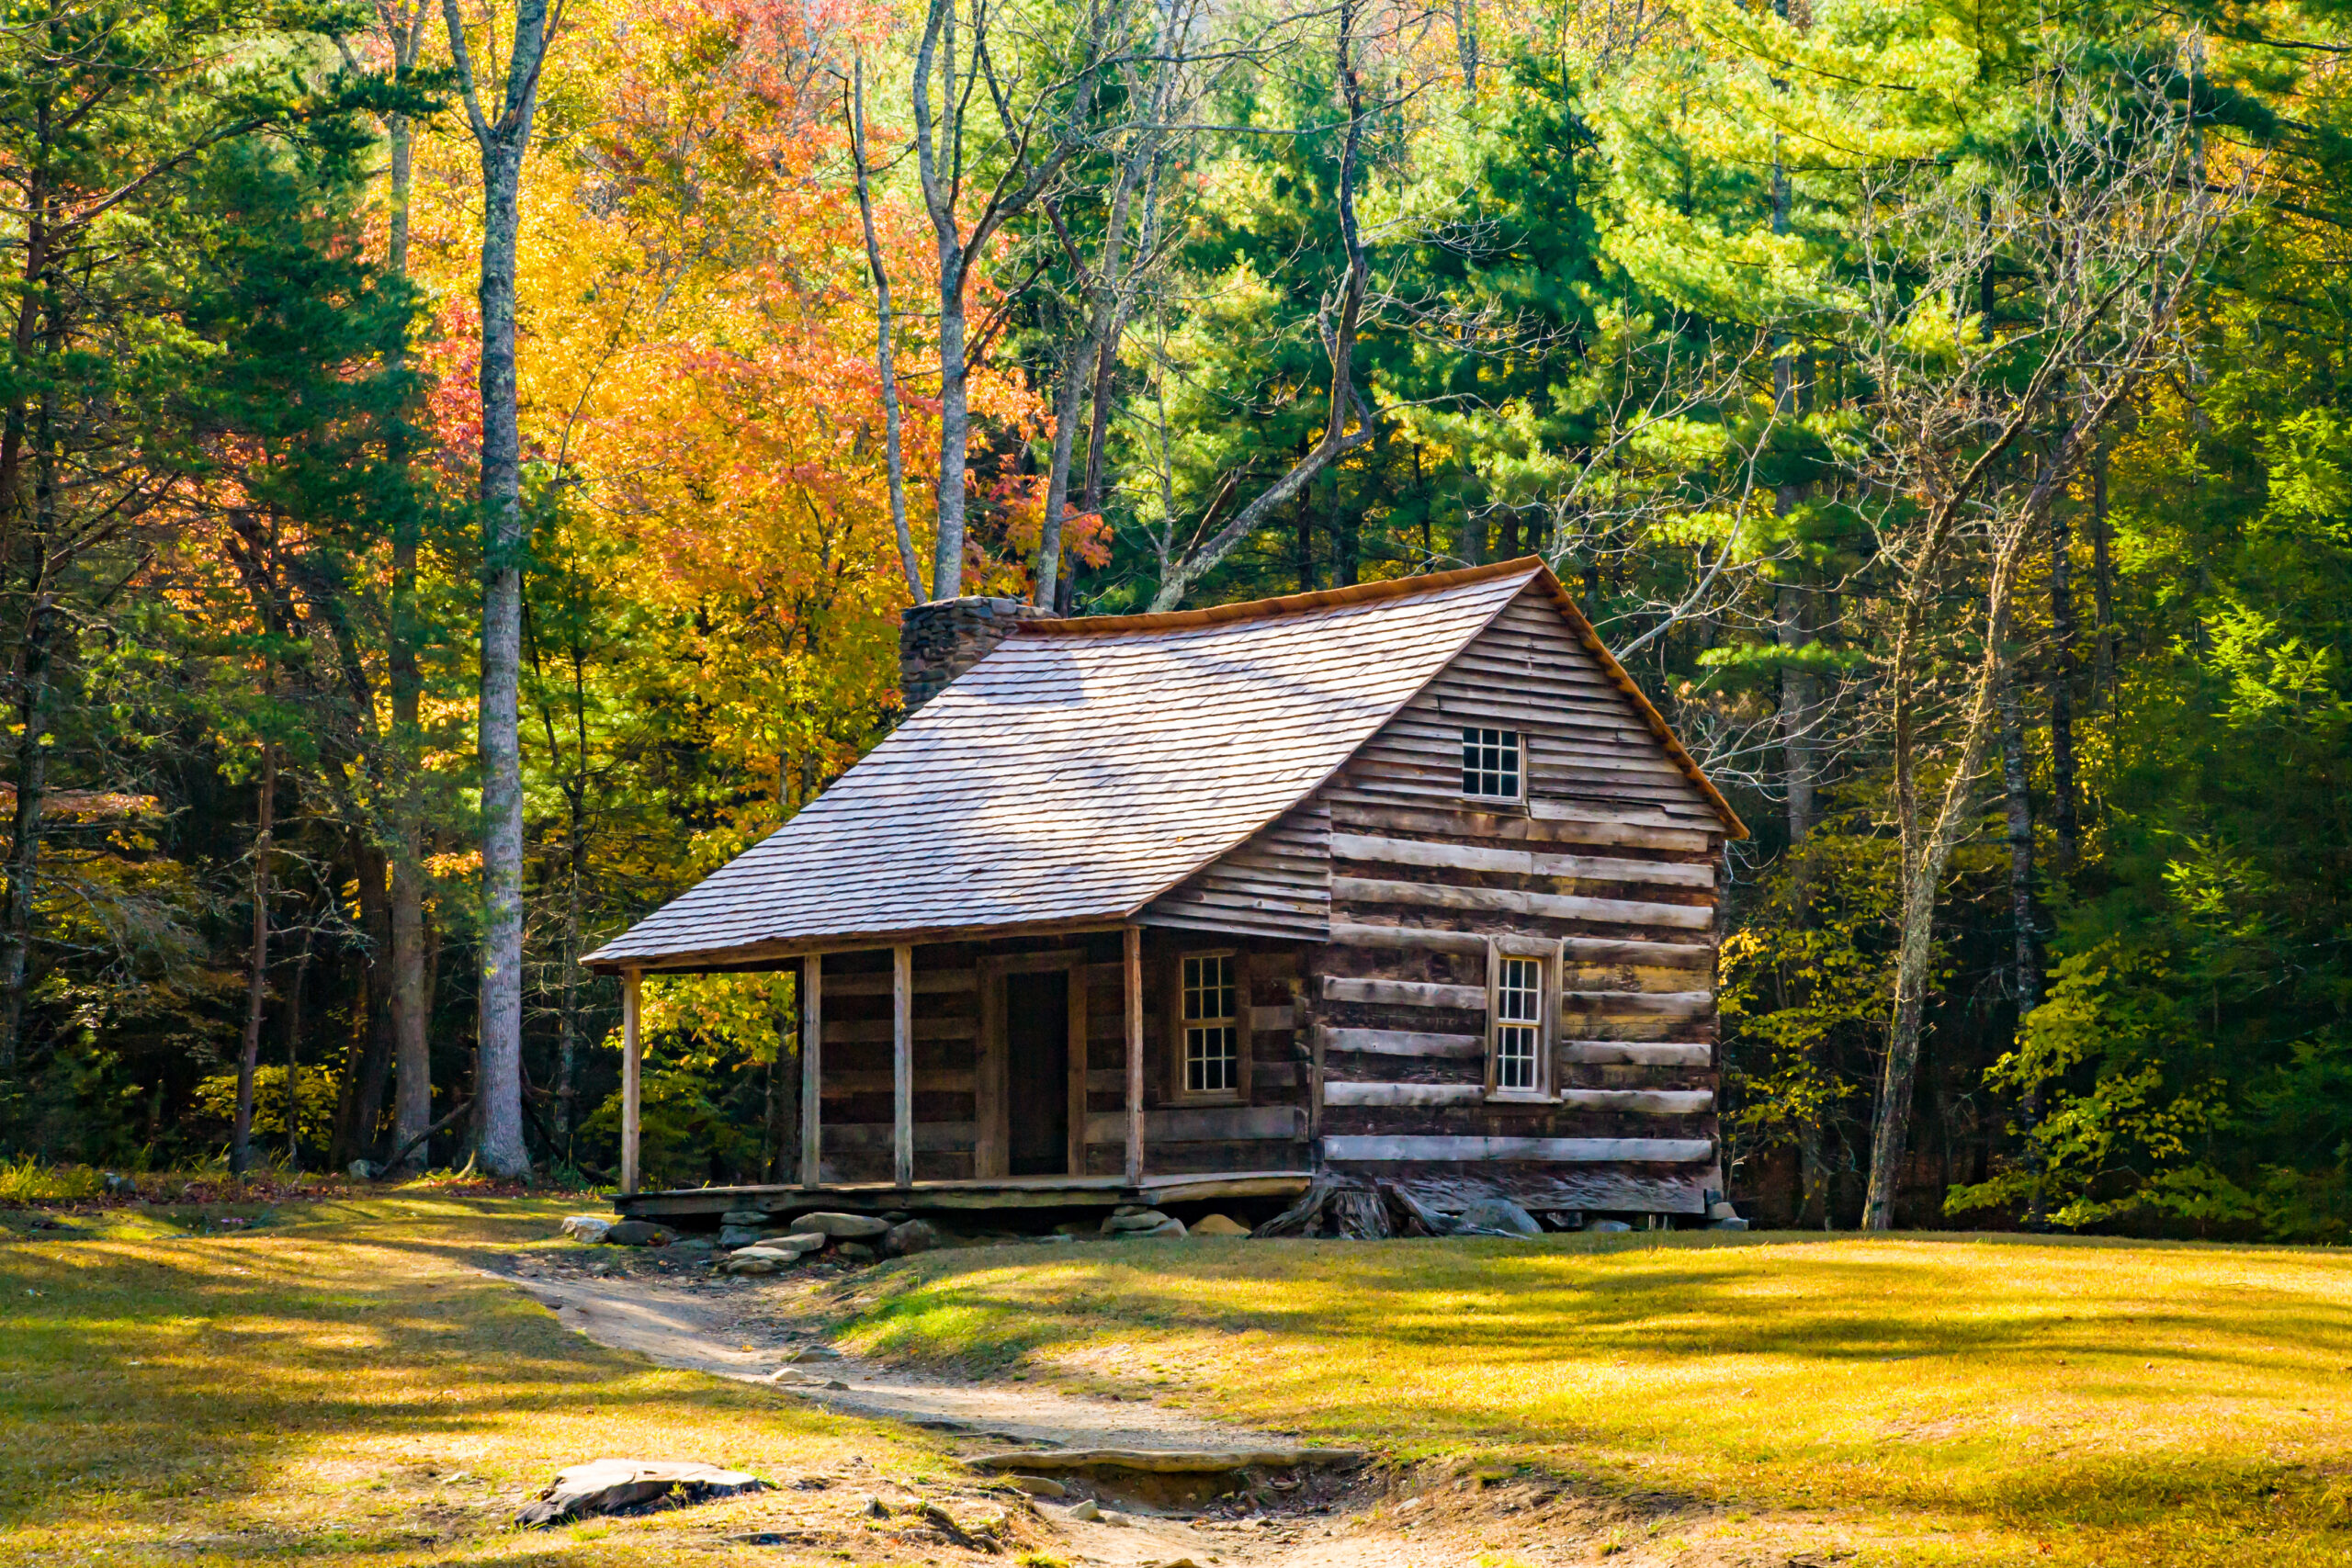 Photo of an old log cabin in Cades Cove which is located in the Great Smoky Mountains National Park